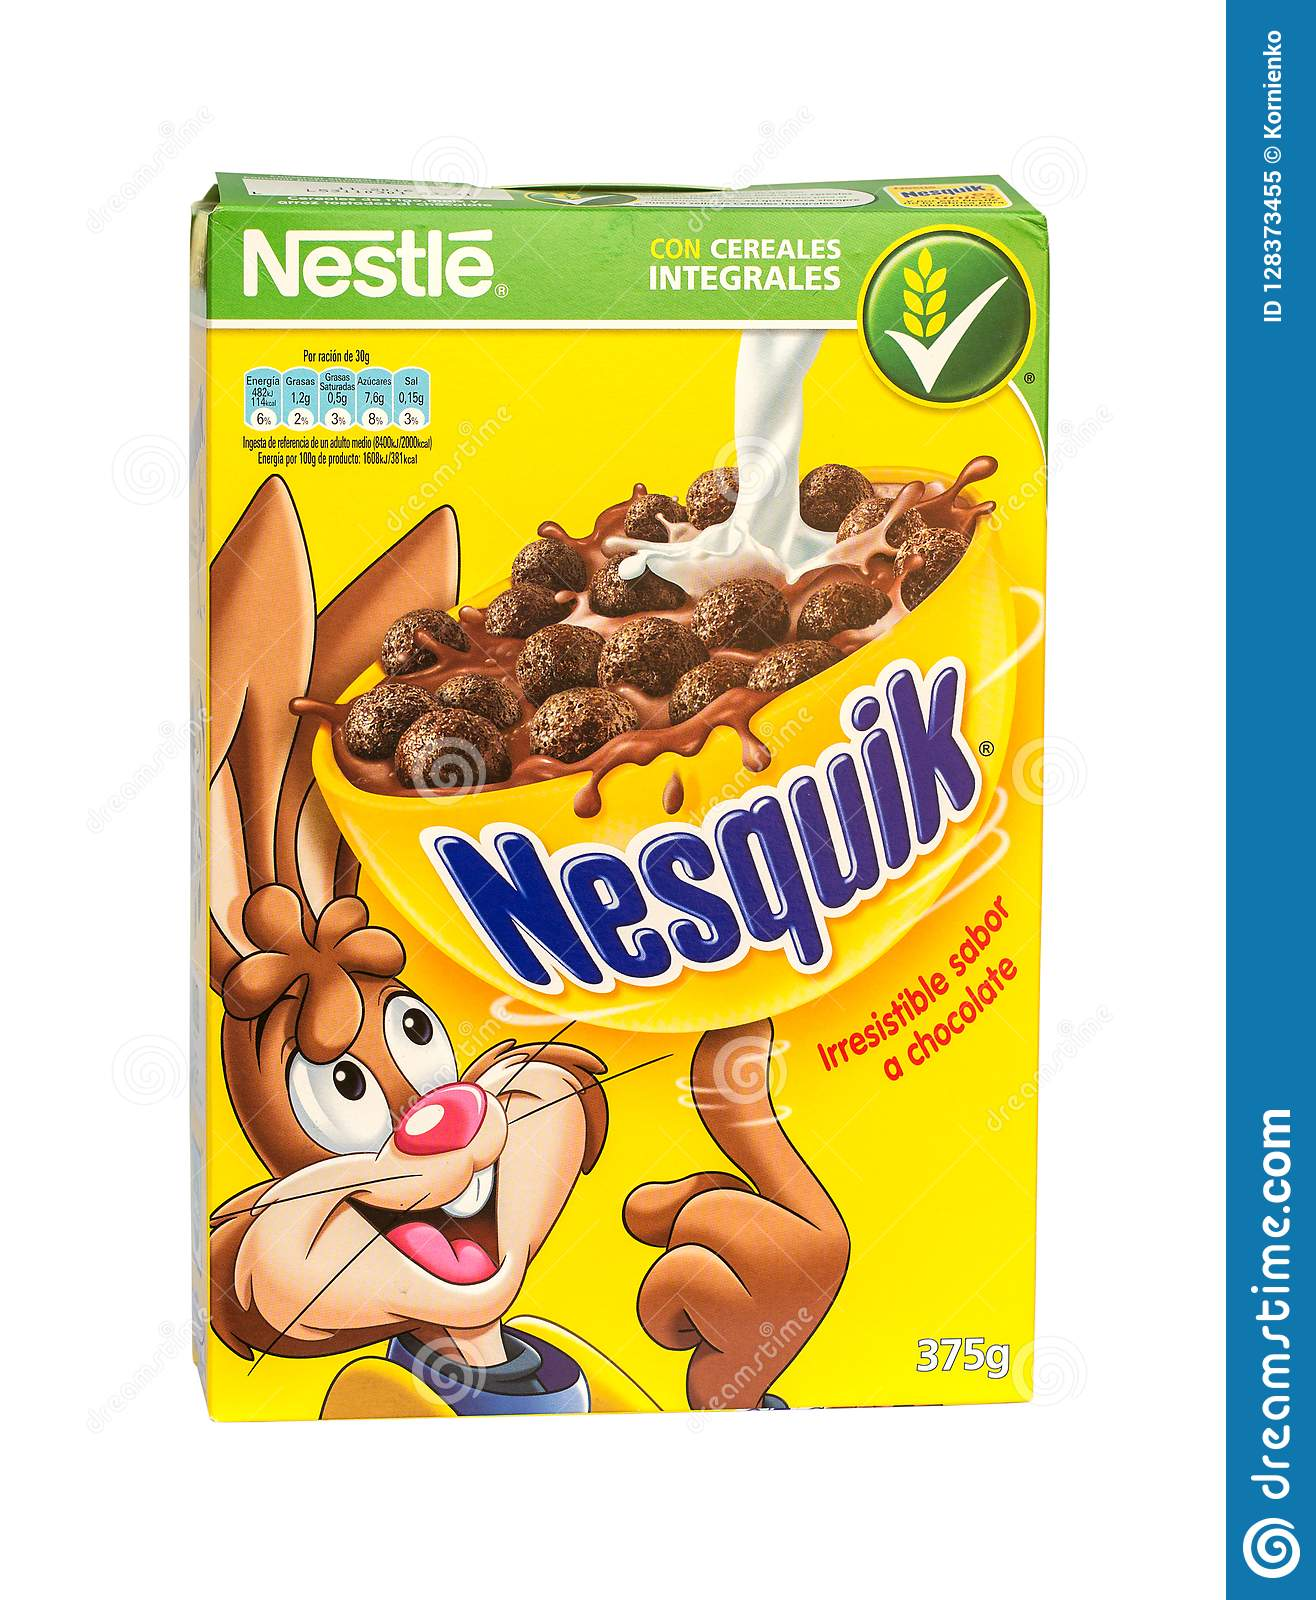 Chocolate Cereals From Nestle Brand Editorial Image - Image